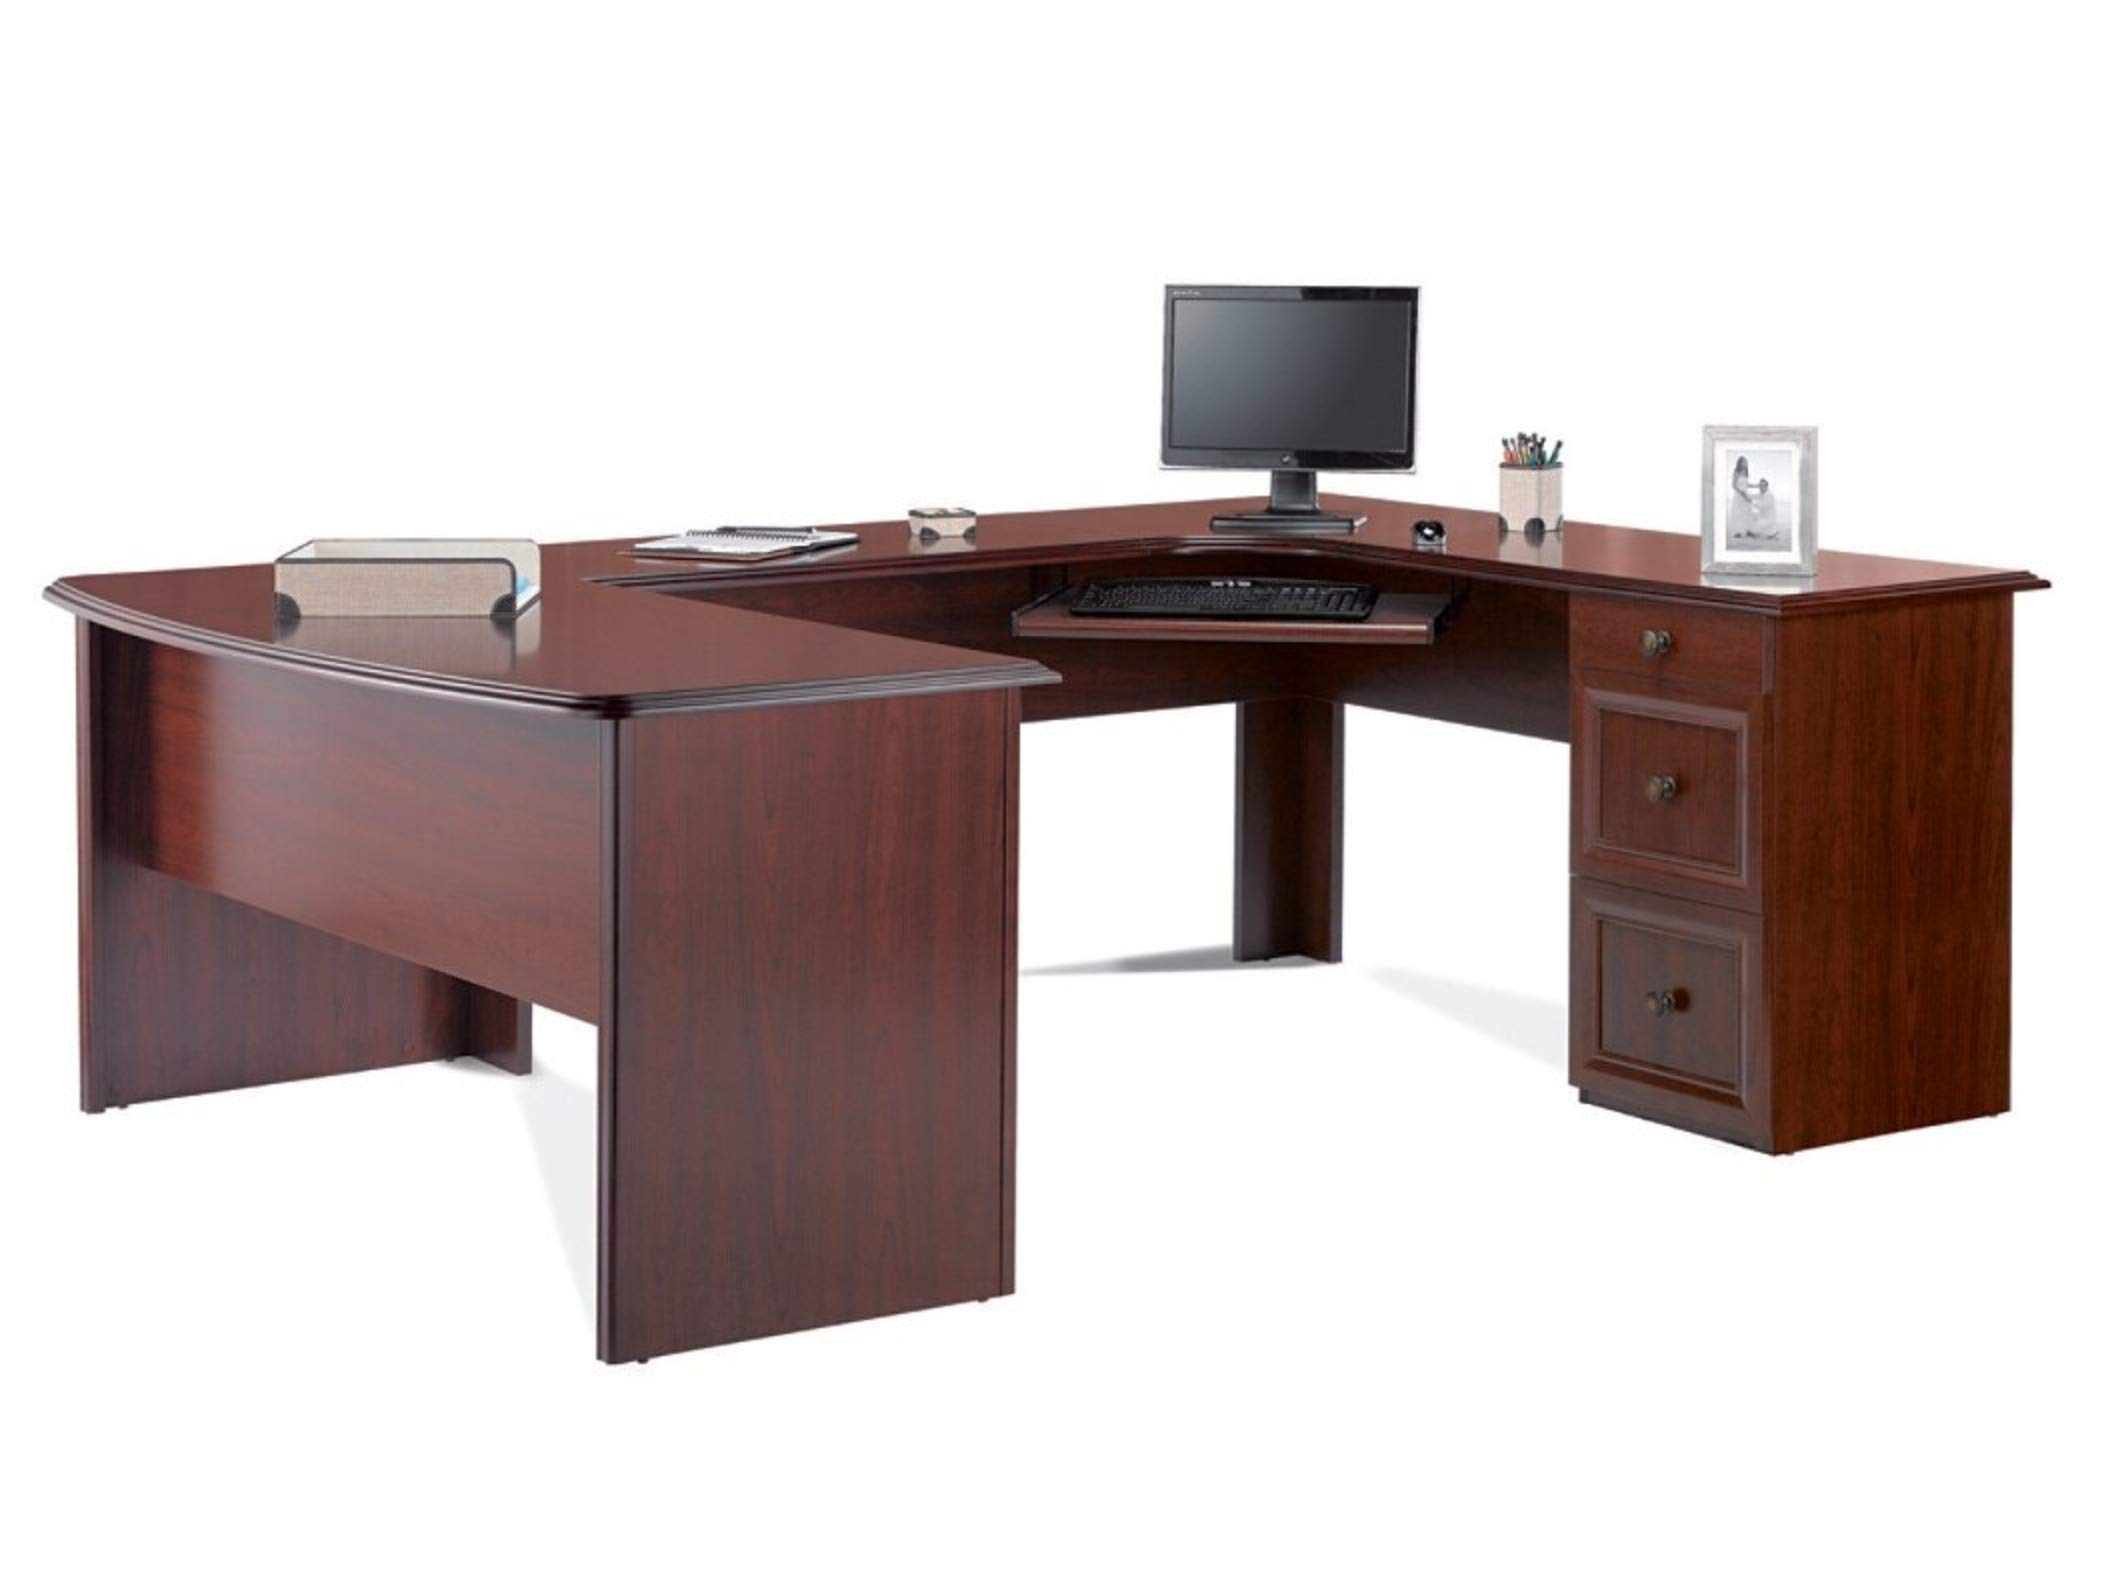 Realspace Broadstreet Executive U-shaped Office Desk - Hutch sold separately by Realspace